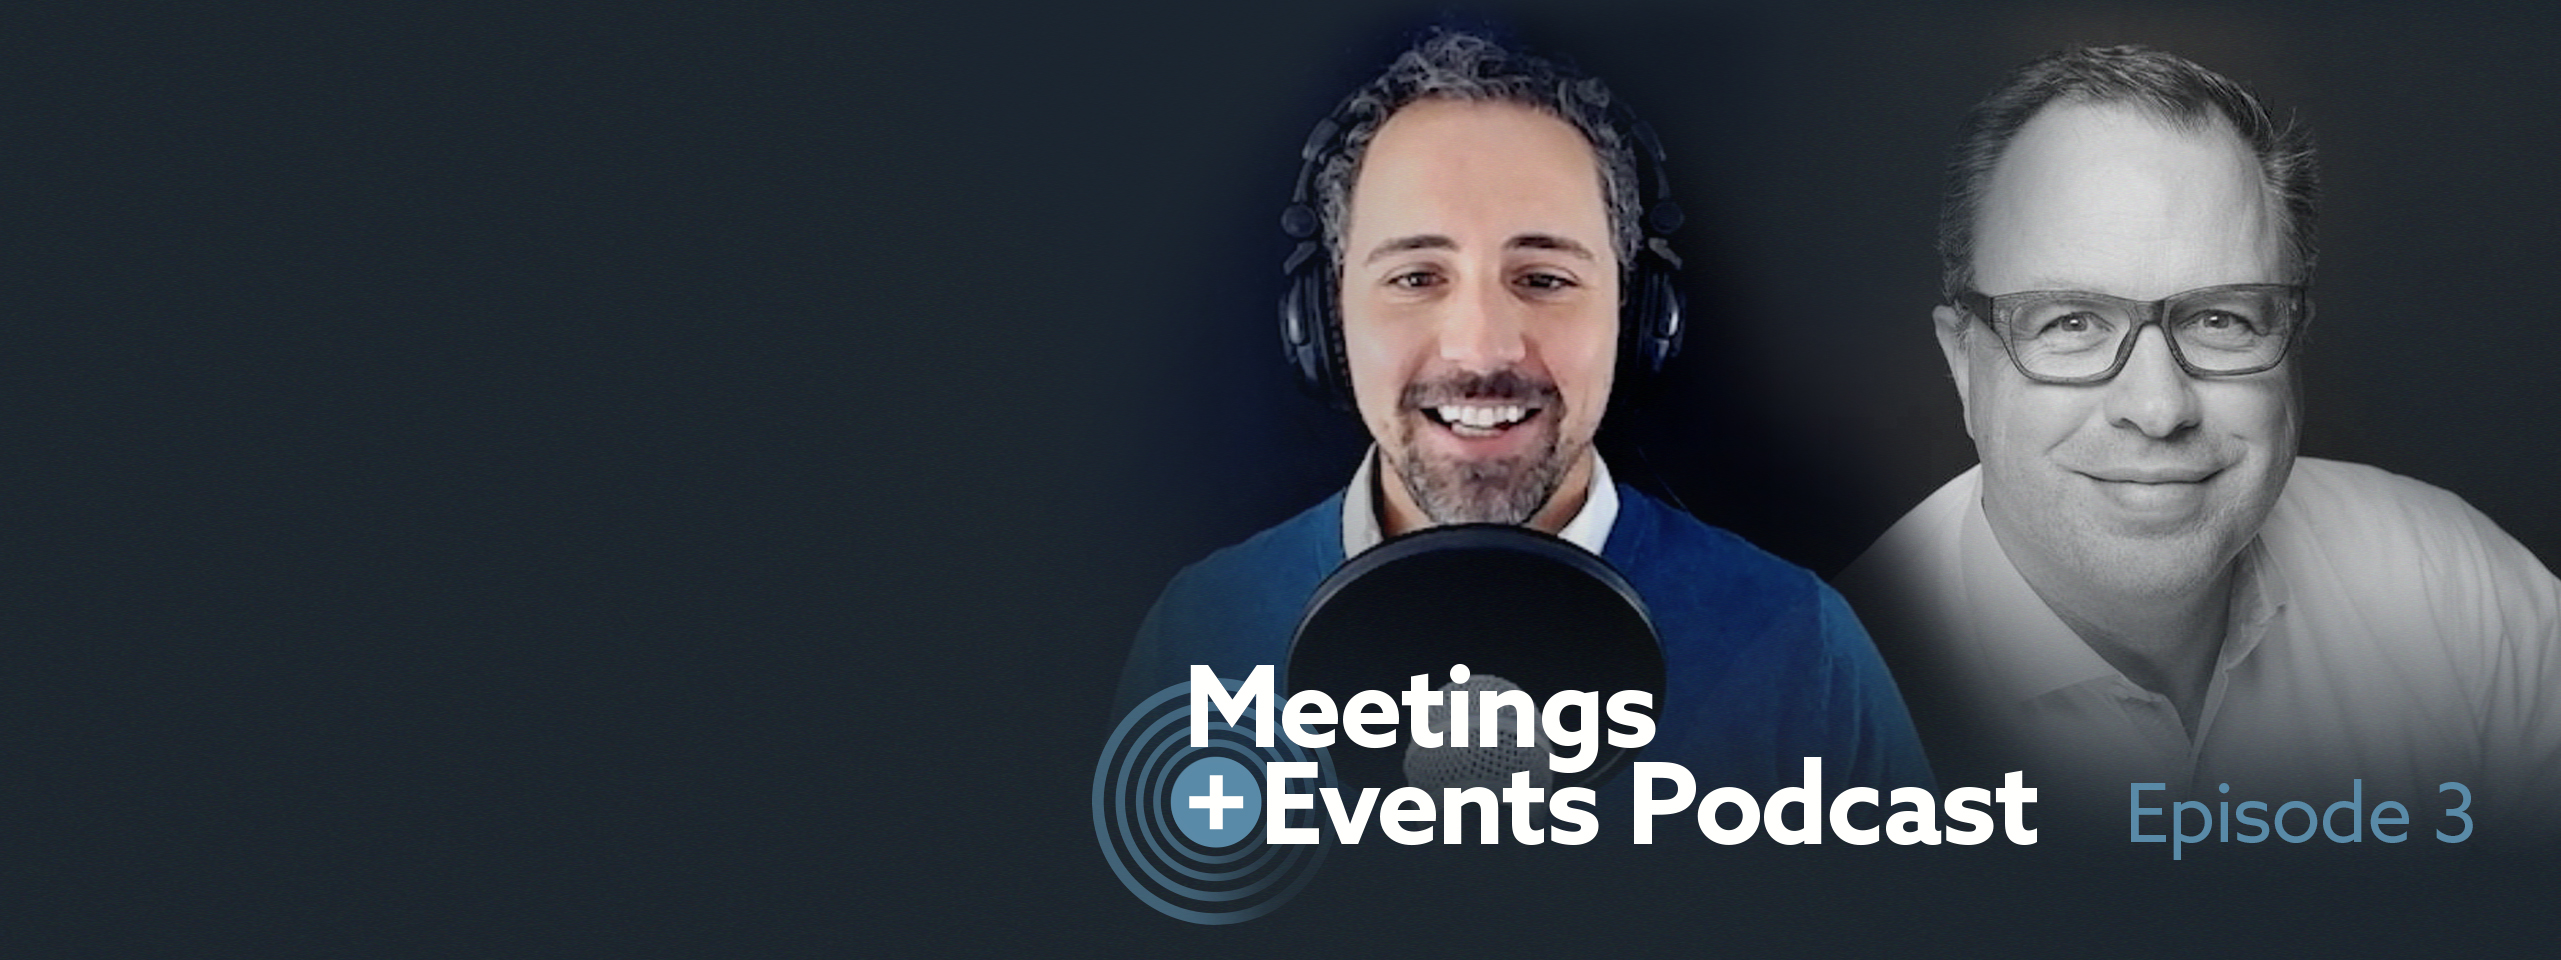 Event design: What it is and how to do it well, with Ruud Janssen